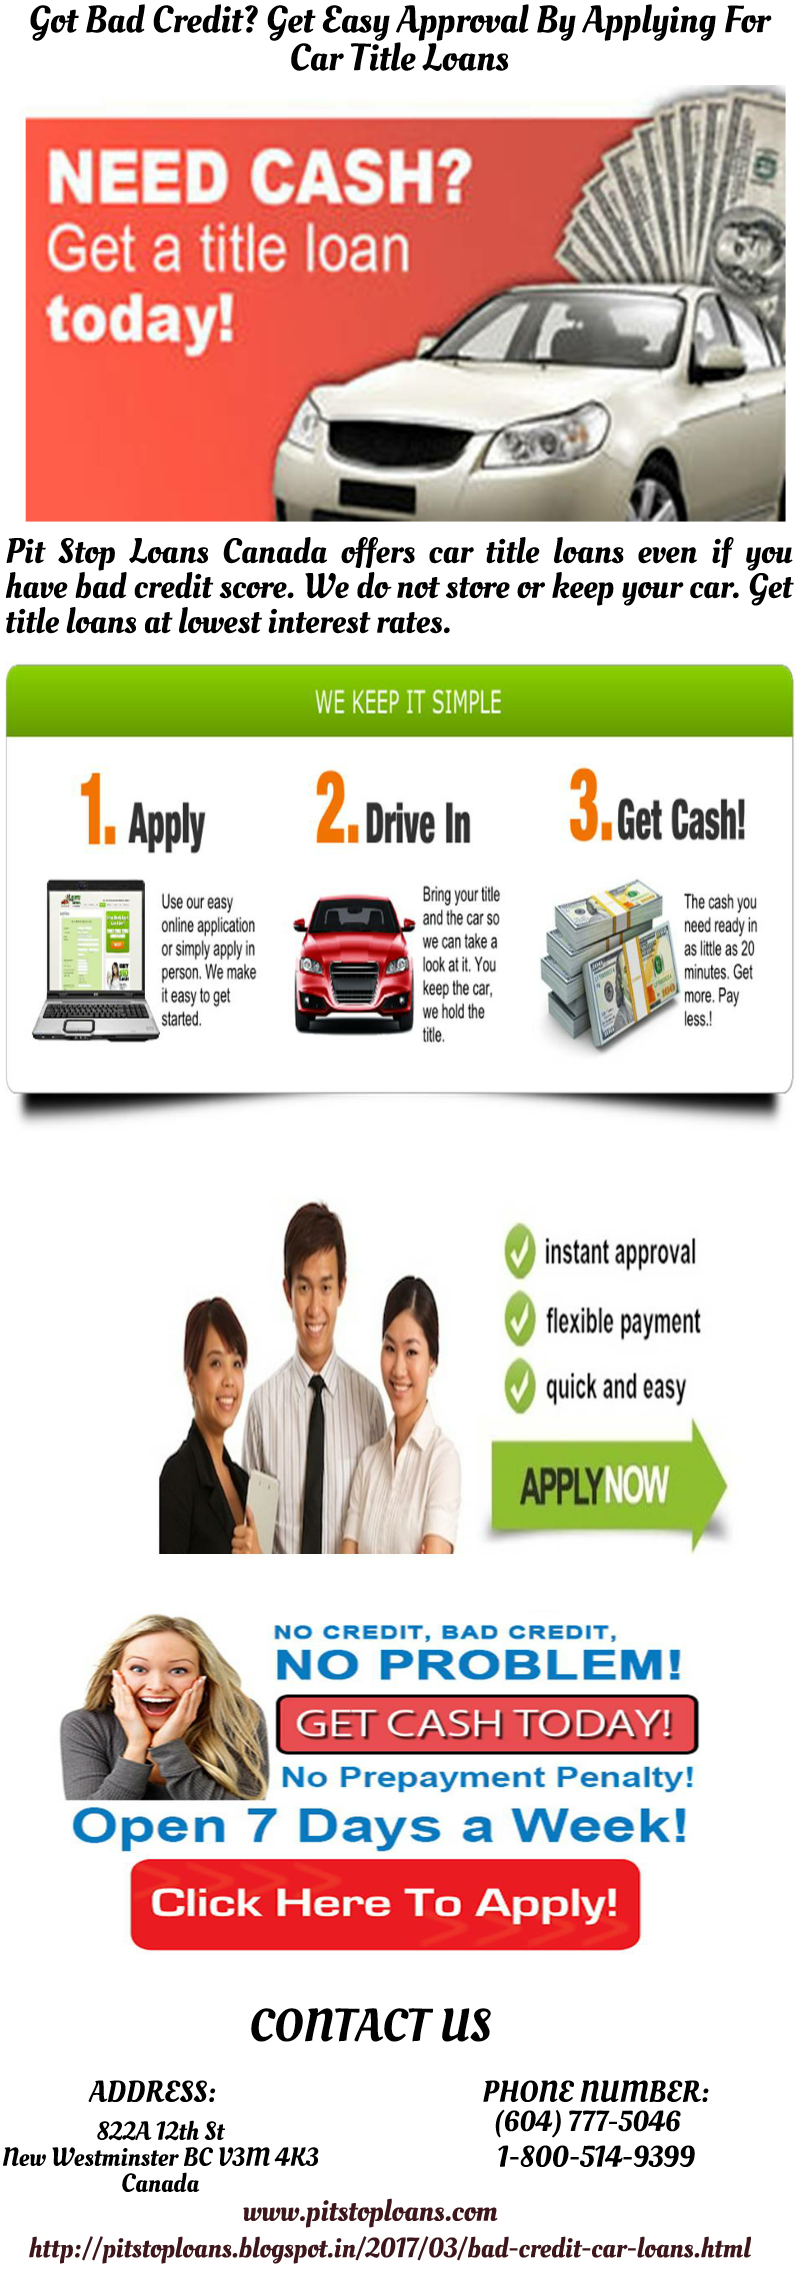 Got Bad Or Poor Credit No Need To Worry Call Pit Stop Loans Canada And Get Approved For Car Title Loans At Lowest In Bad Credit Car Loan Bad Credit Car